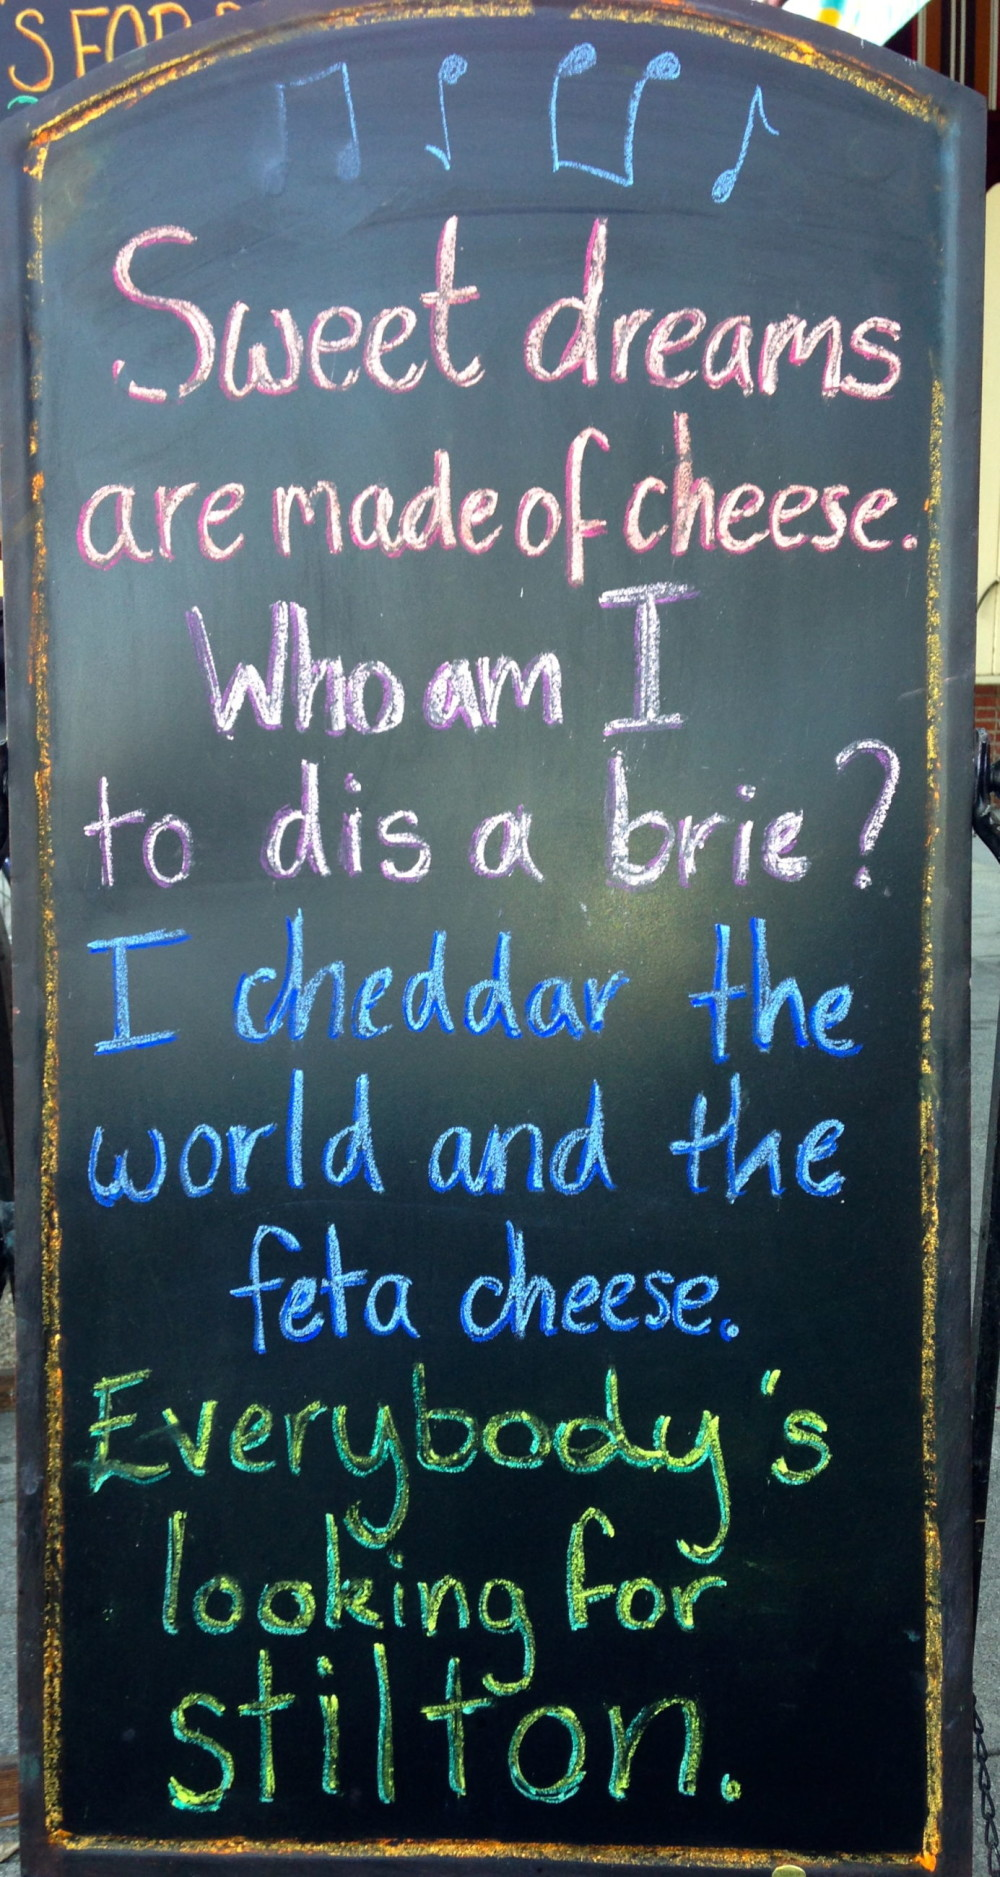 Say CHEESE!  This is the sign in front of the loveliest cheese shop.